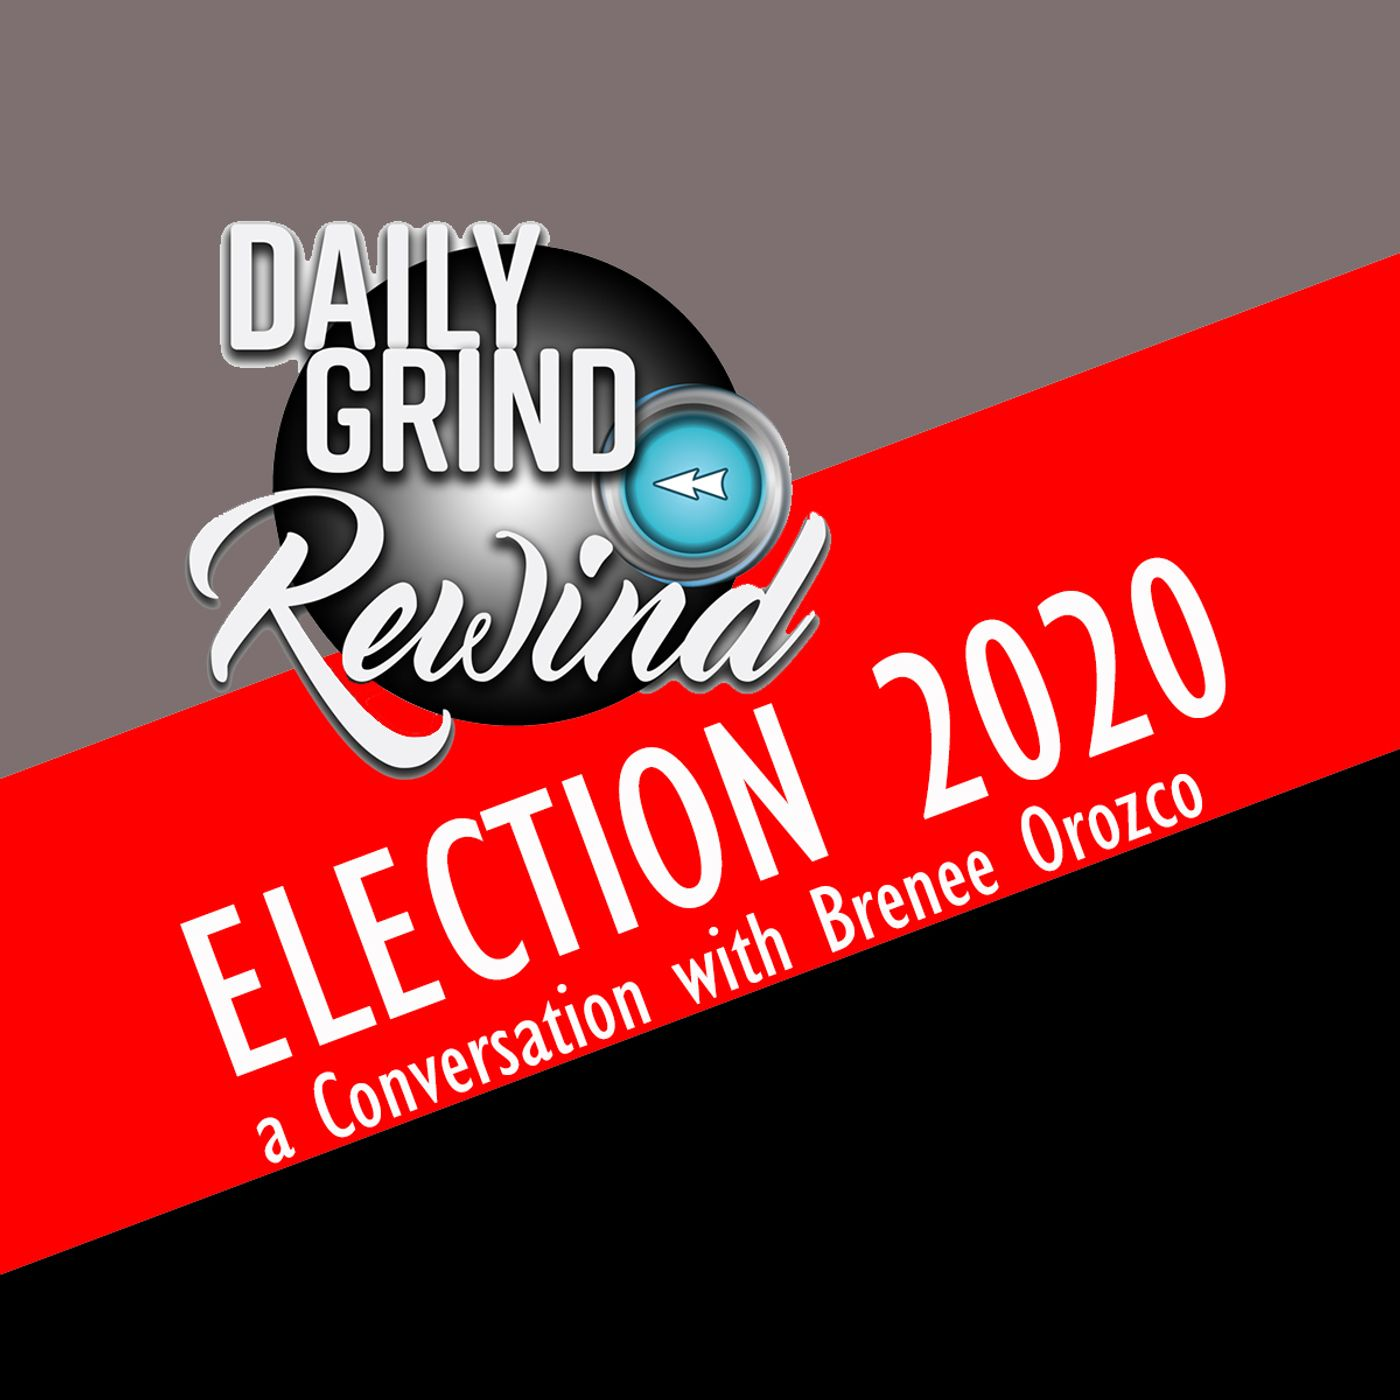 A Conversation with Brenee Orozco - Candidate for District Court Judge